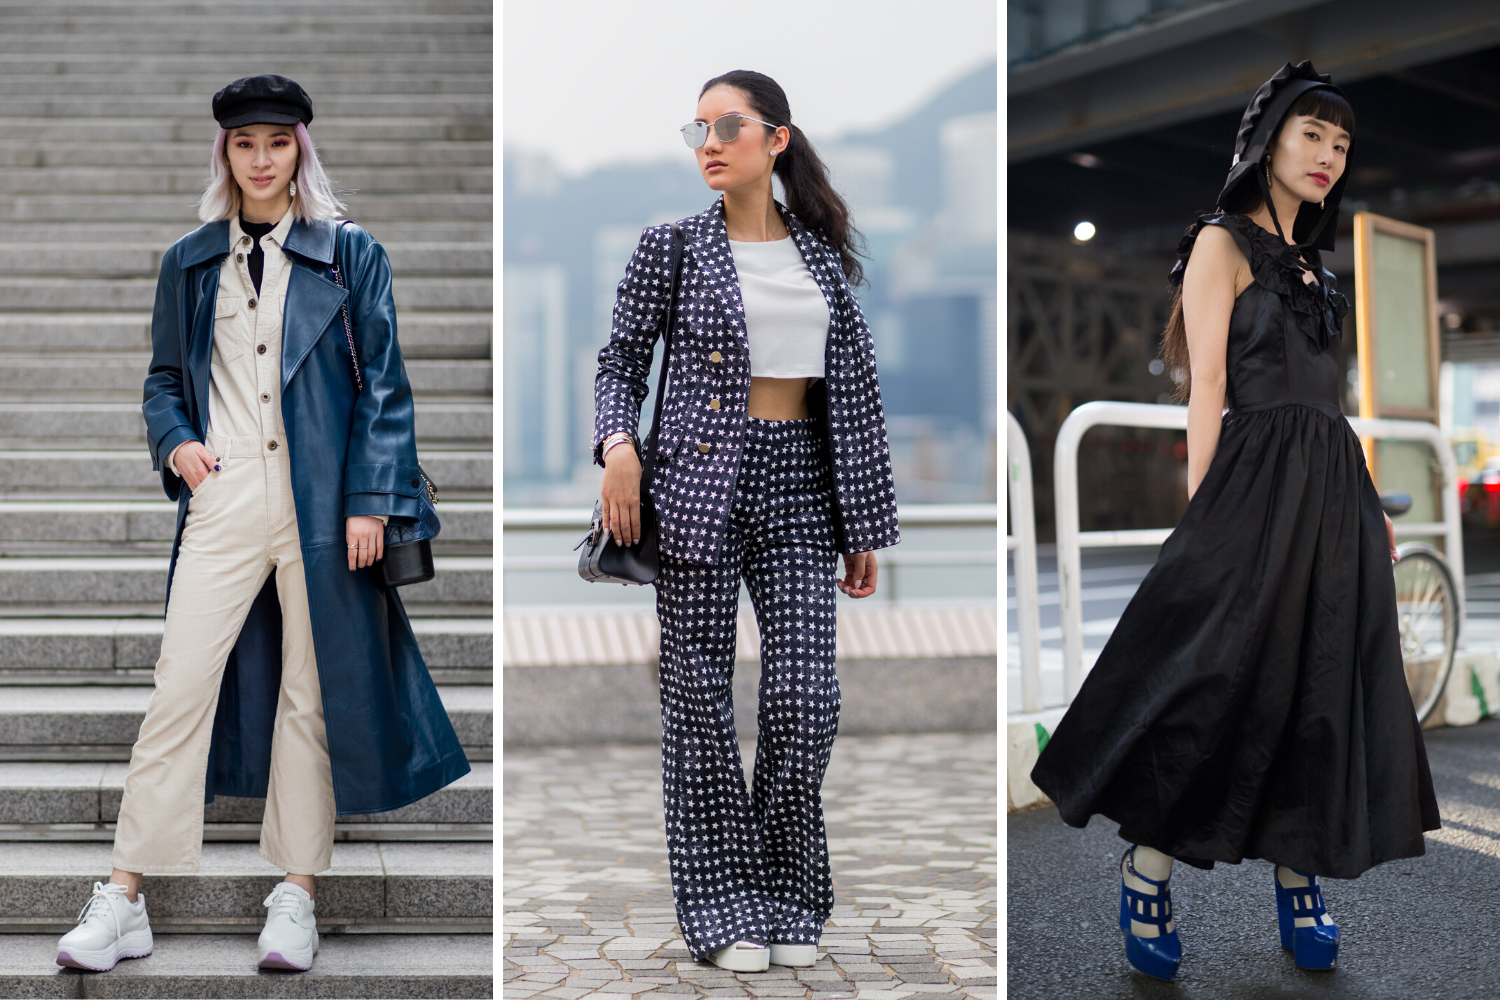 Iconic Women's Fashion Trends